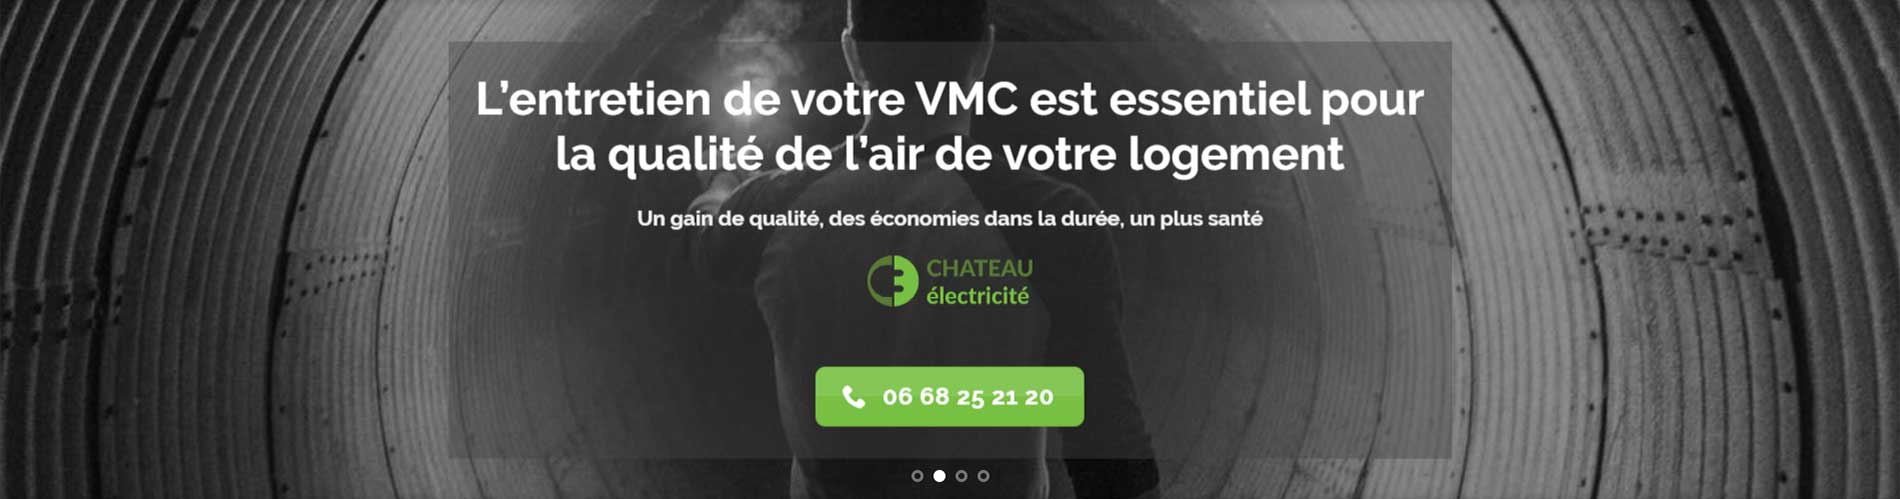 promotion vmc sur site internet Lannion